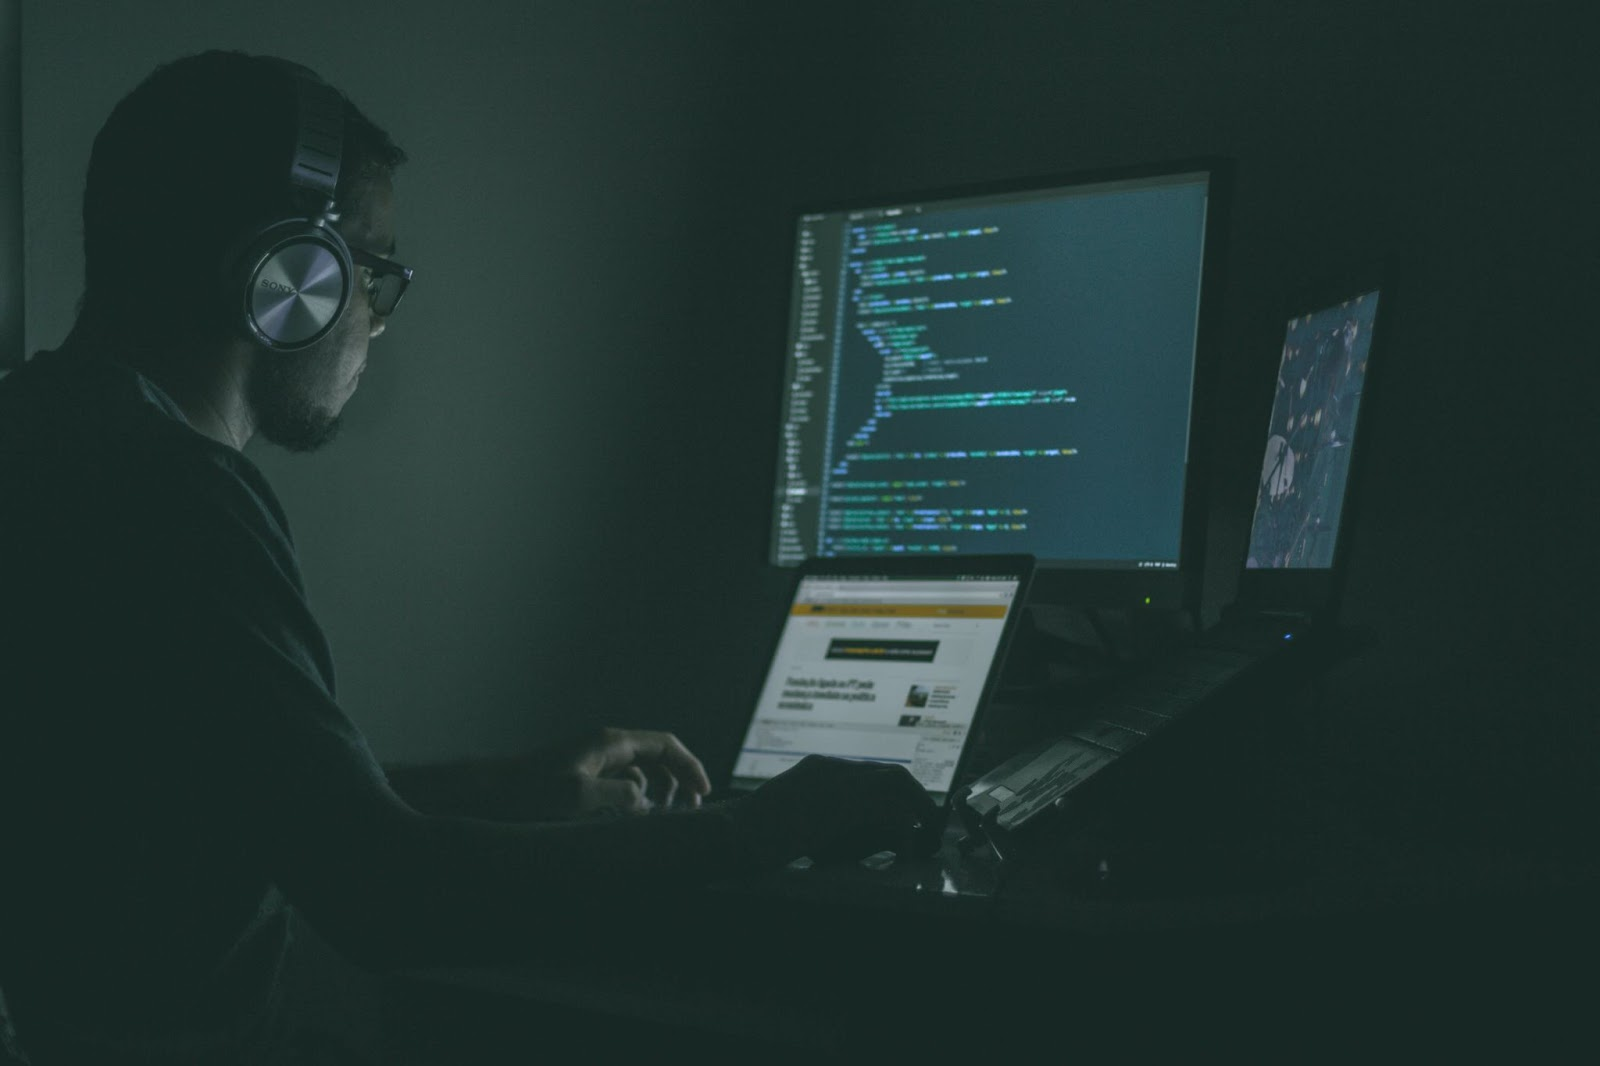 An AI engineer working on an AI project in his workstation.